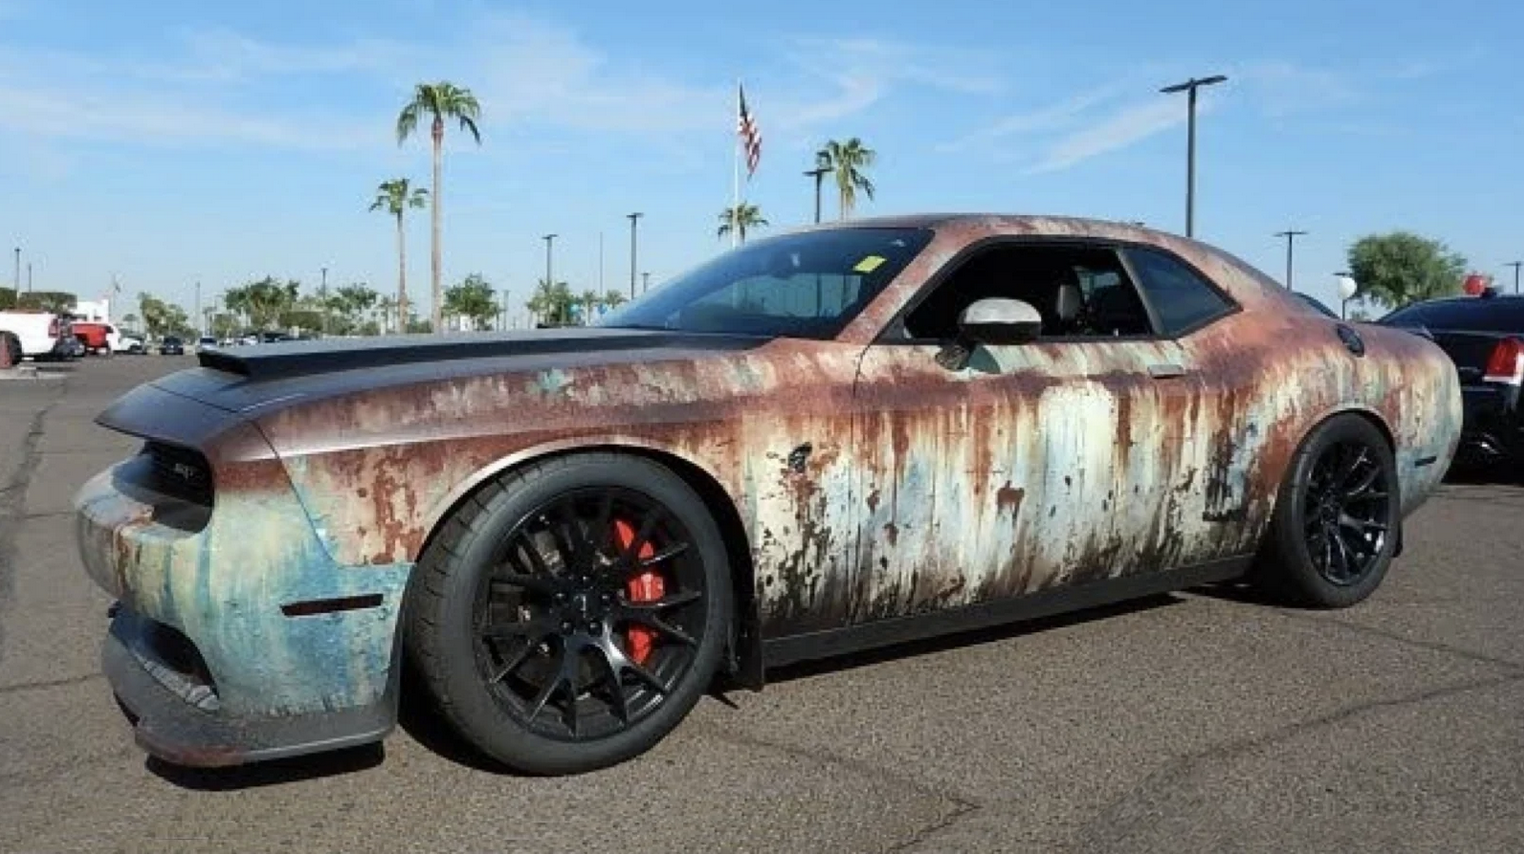 Automotive Rewind: The Wildest Rust-Wrapped Cars